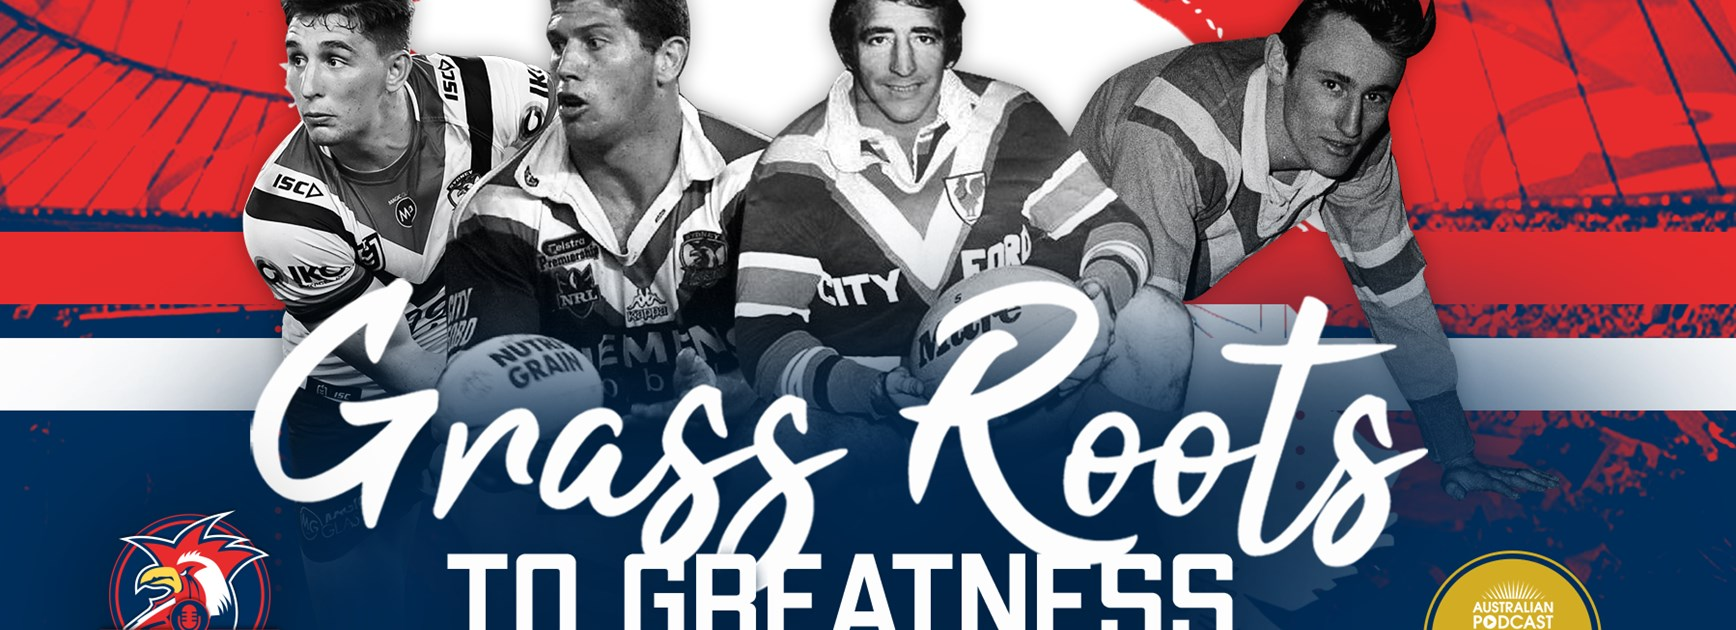 Roosters Radio | Grassroots To Greatness